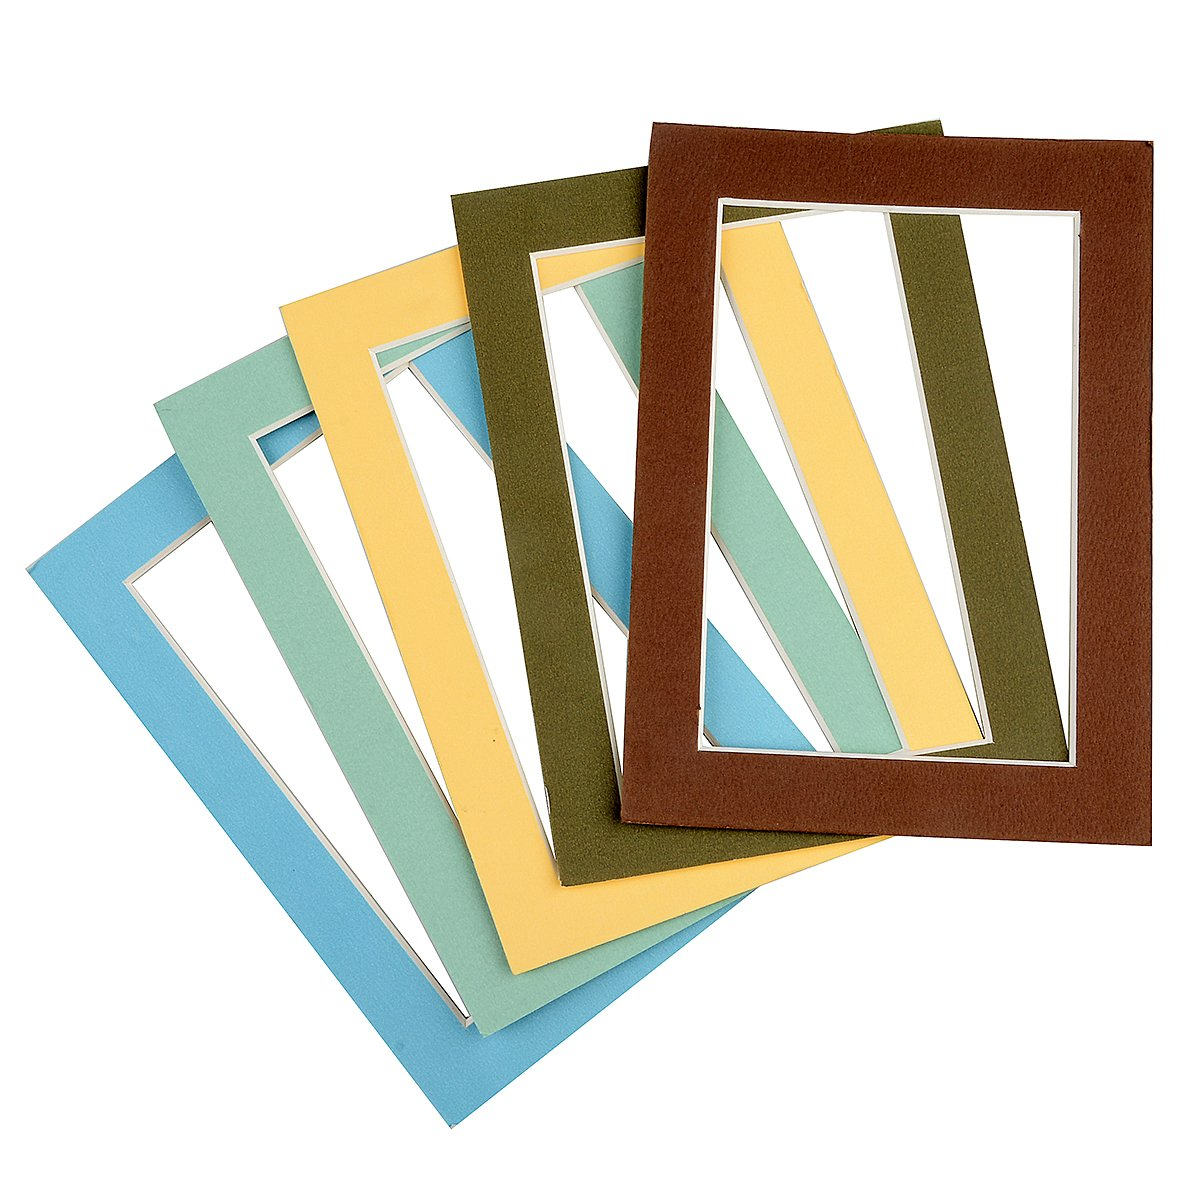 Mat Board Picture Paper Mats Photos 10 Pack 11x14 Inches Size with White Core Bevel Cut for 8x10 Inches Photos Opening Acid Free Mixed Colors by Aike Home